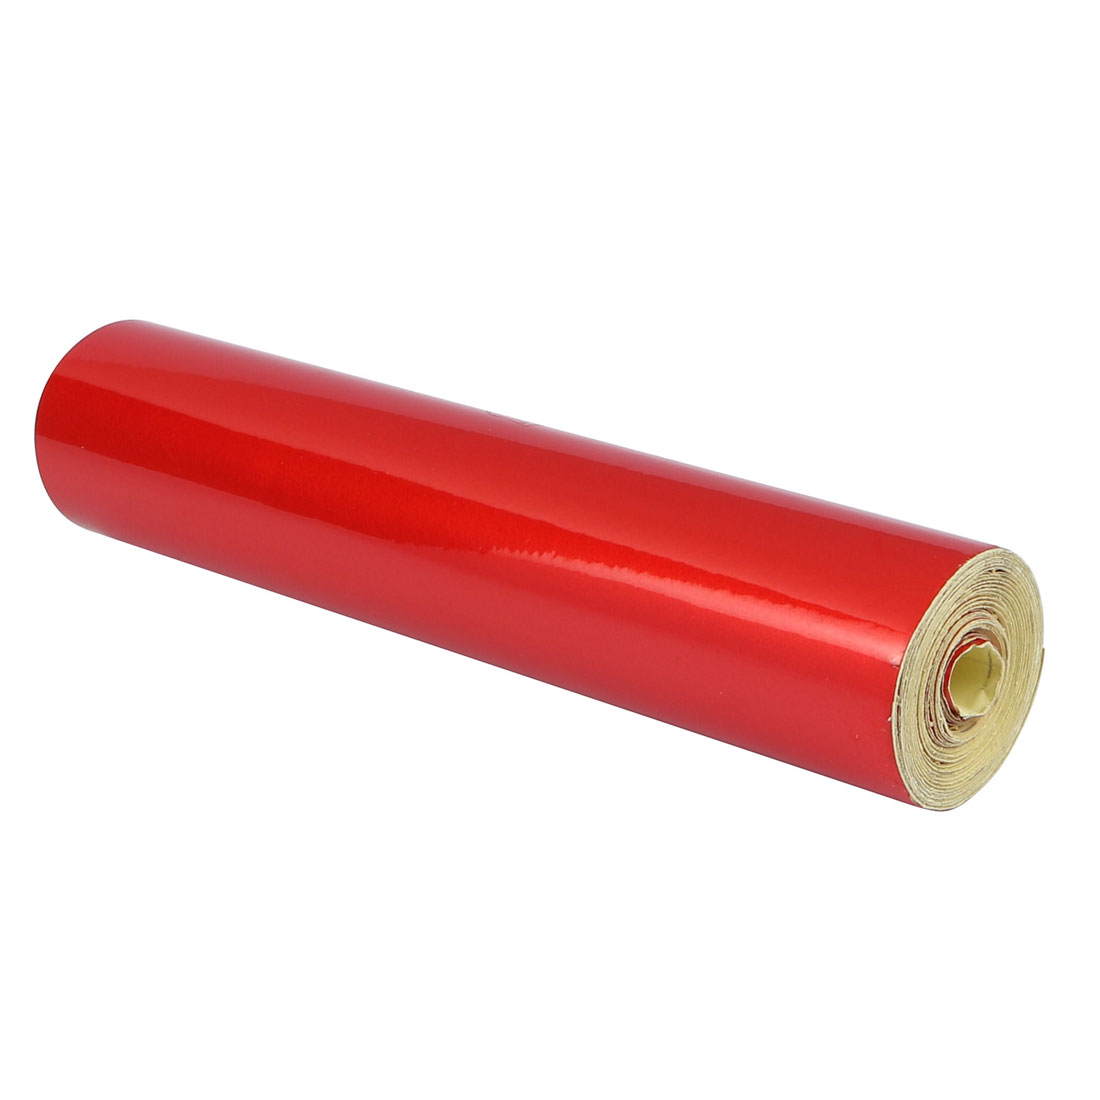 20cm Width 6M Length Single Sided Adhesive Reflective Warning Tape Red